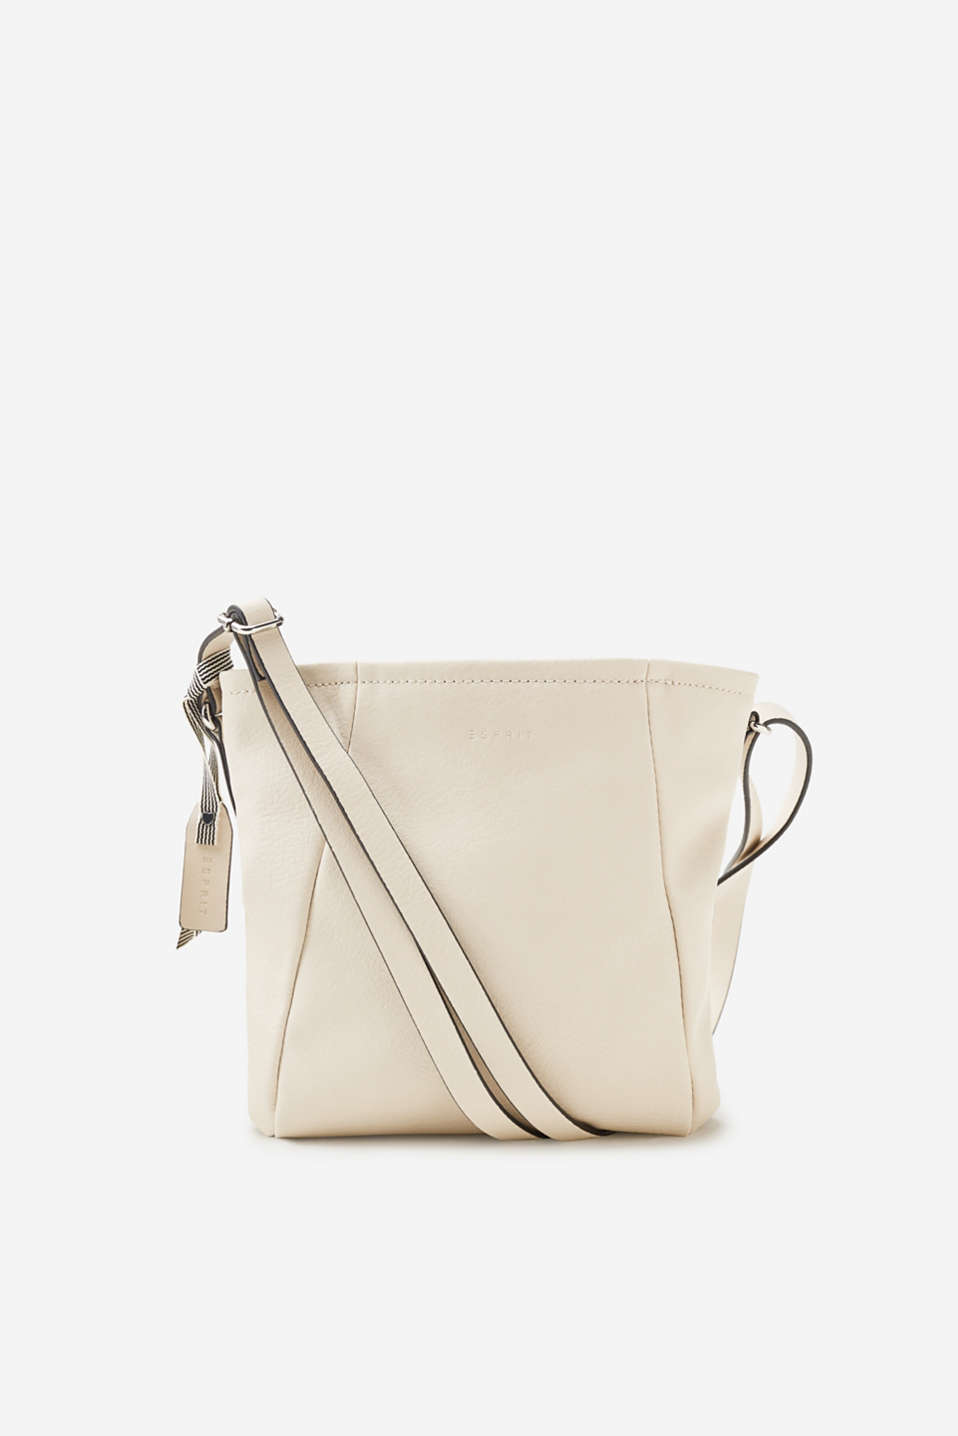 The gathered front pockets and authentic leather look make this small shoulder bag a highly detailed accessory.